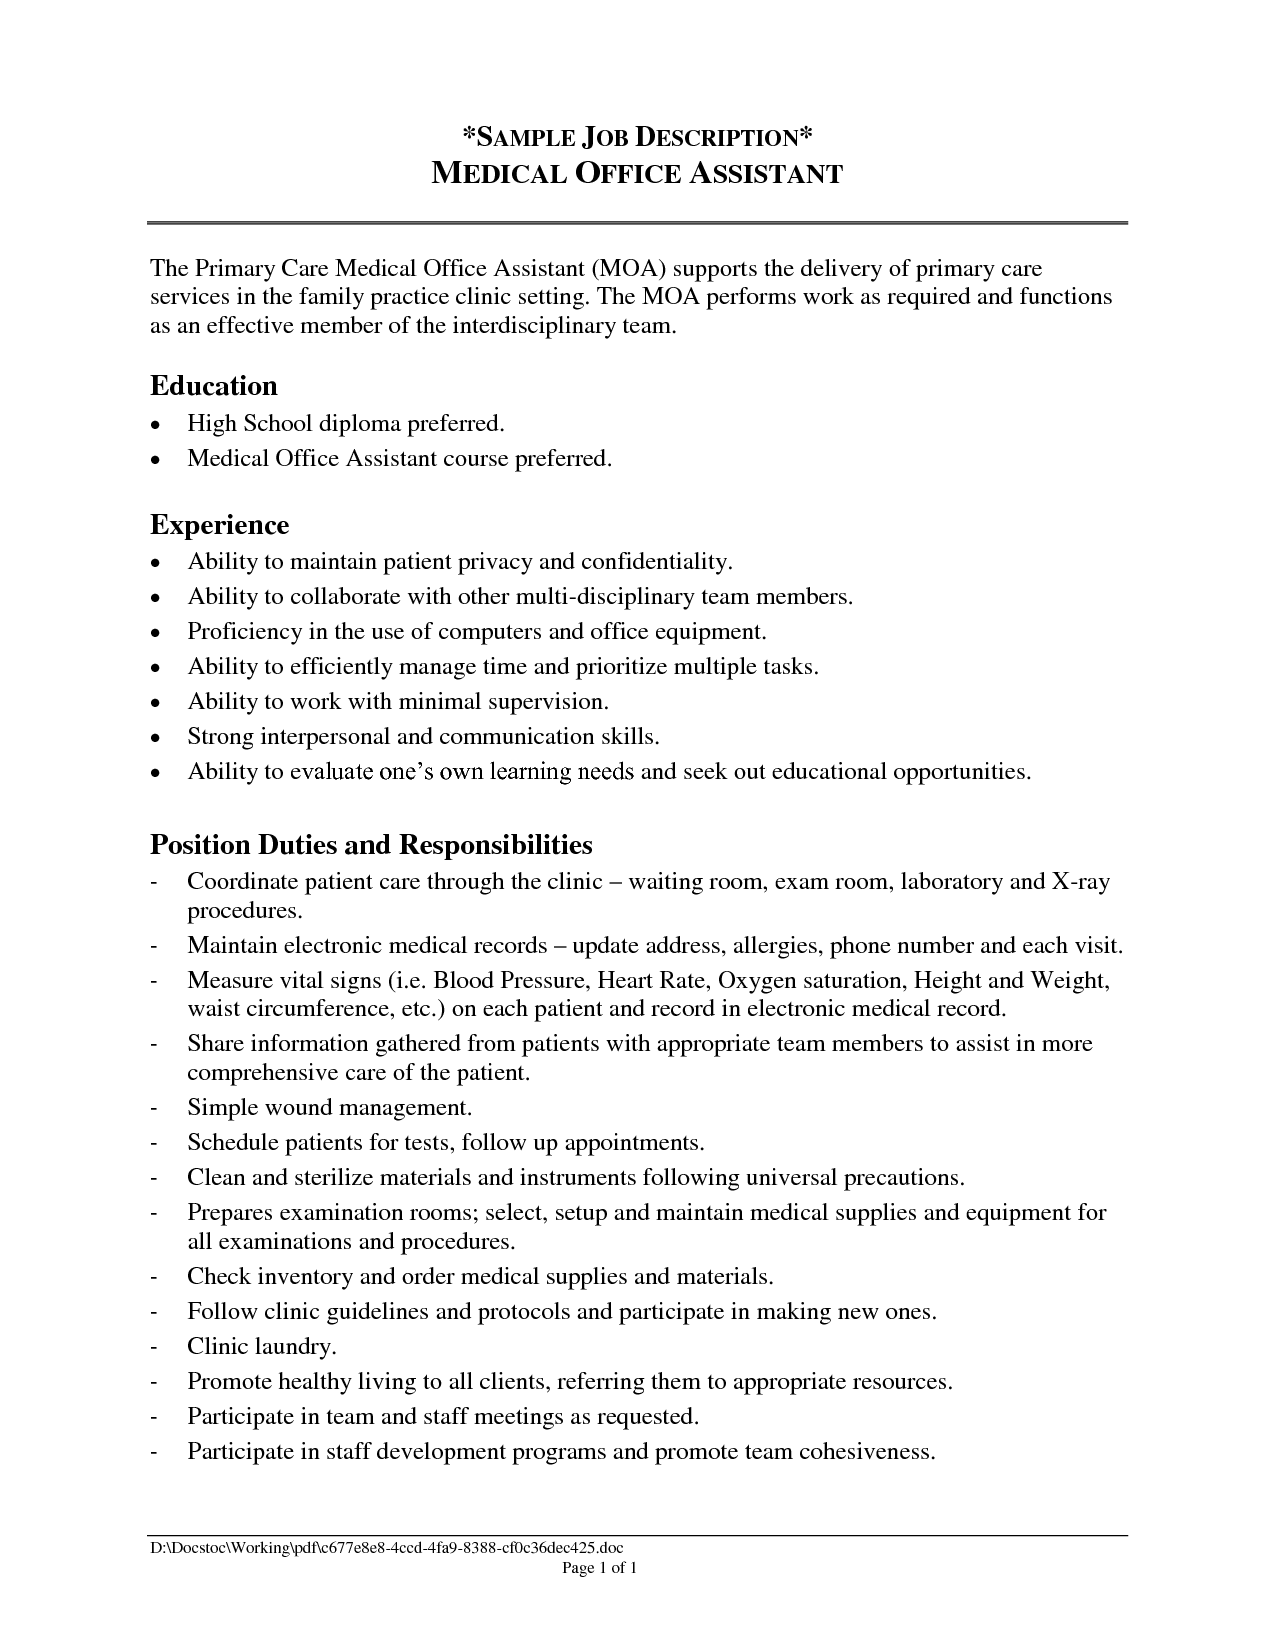 medical assistant job description resume sample resume for medical assistant job